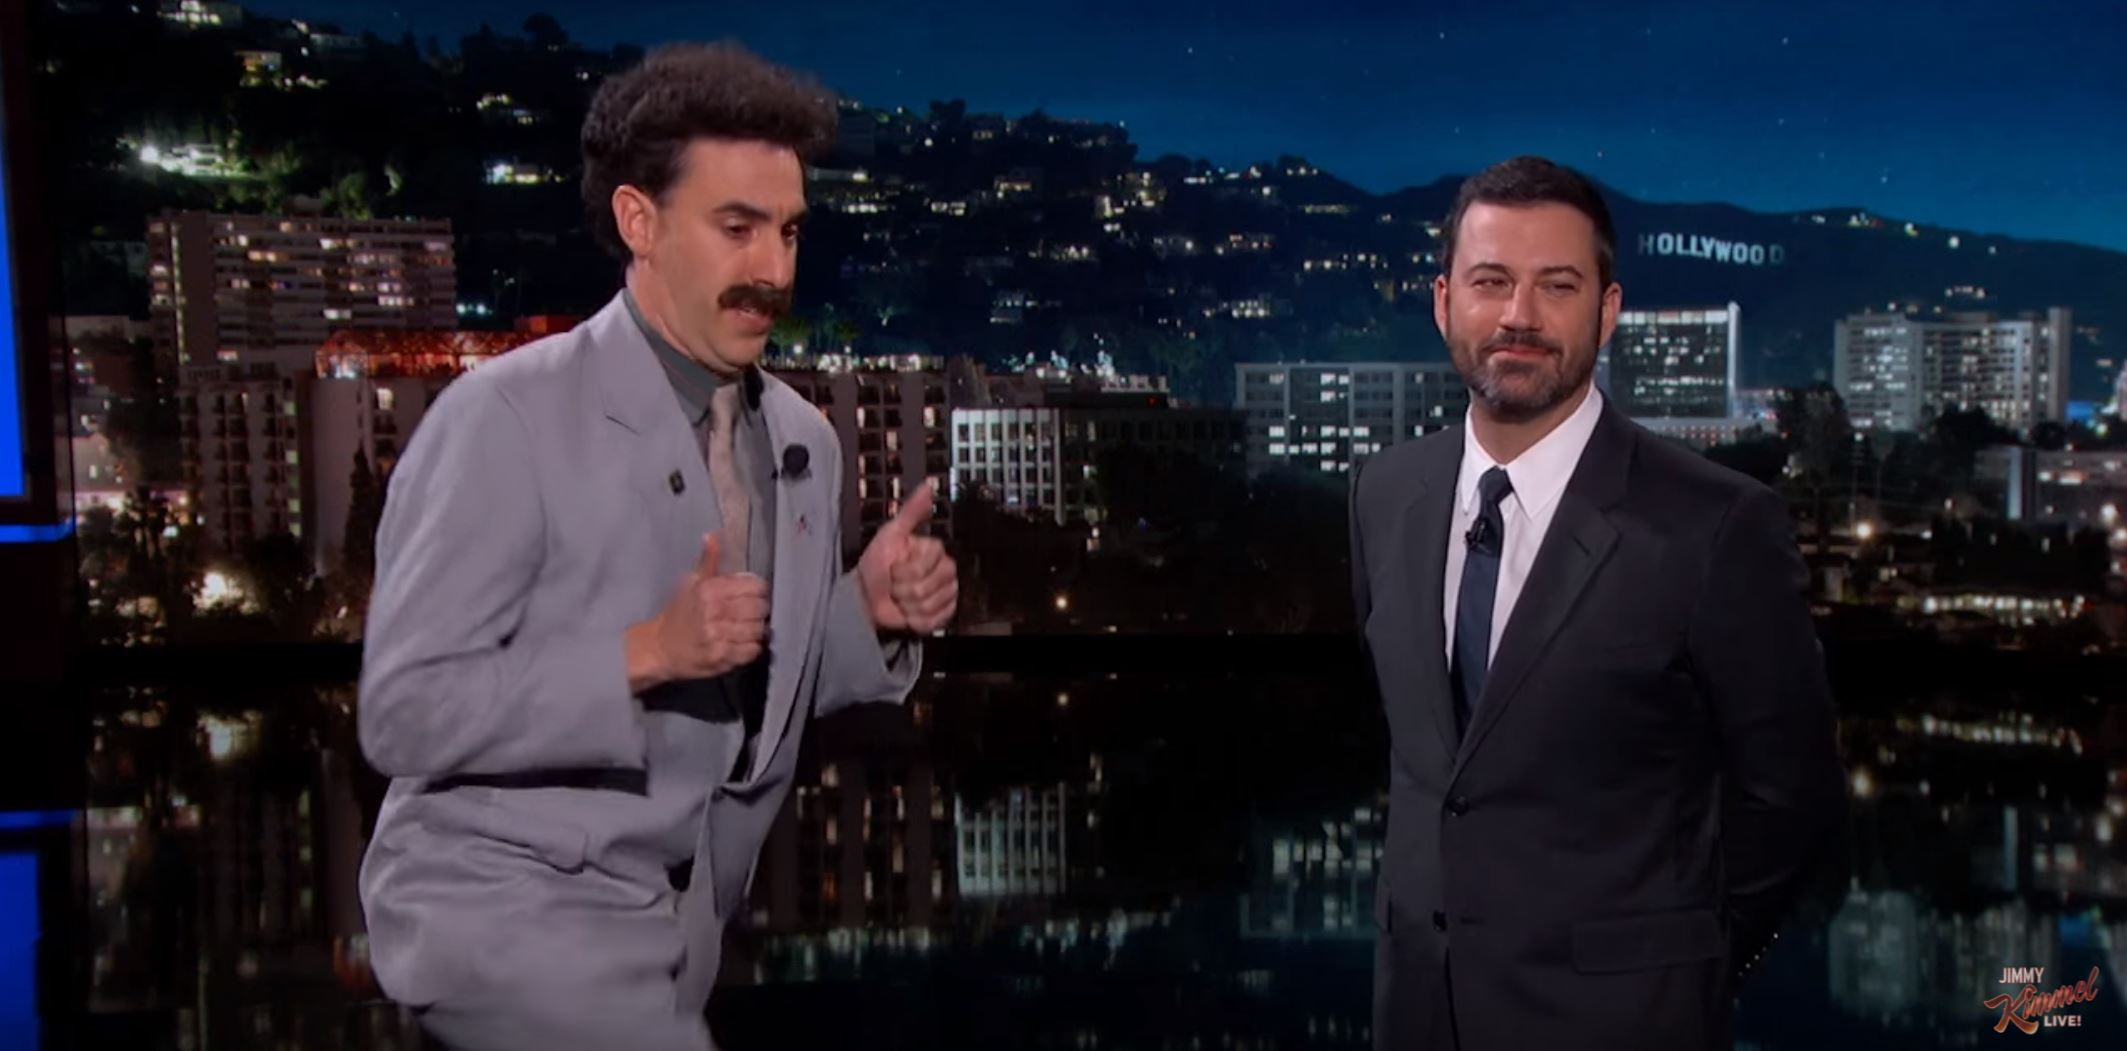 """BORAT Returns To Present The New Trailer For """"The Brothers Grimsby"""""""